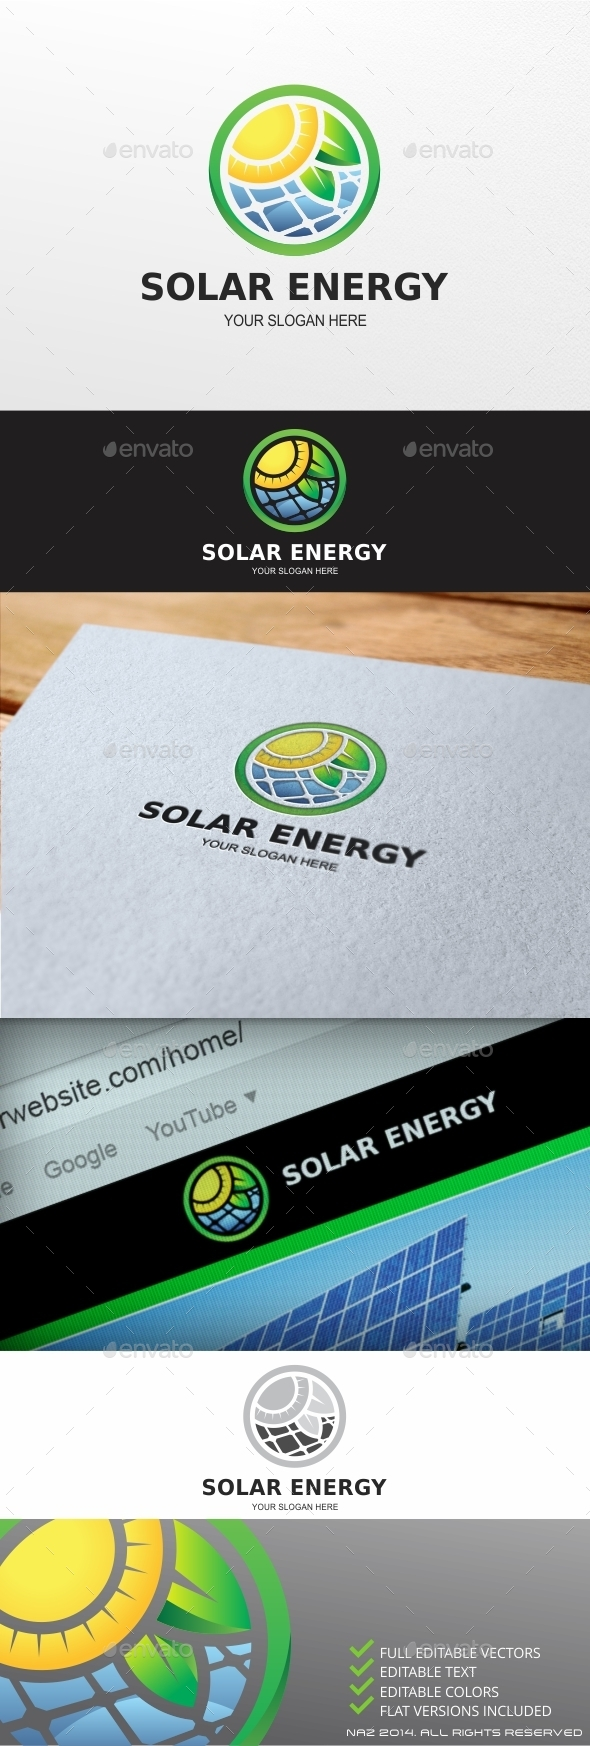 GraphicRiver Solar Energy logo 9459380